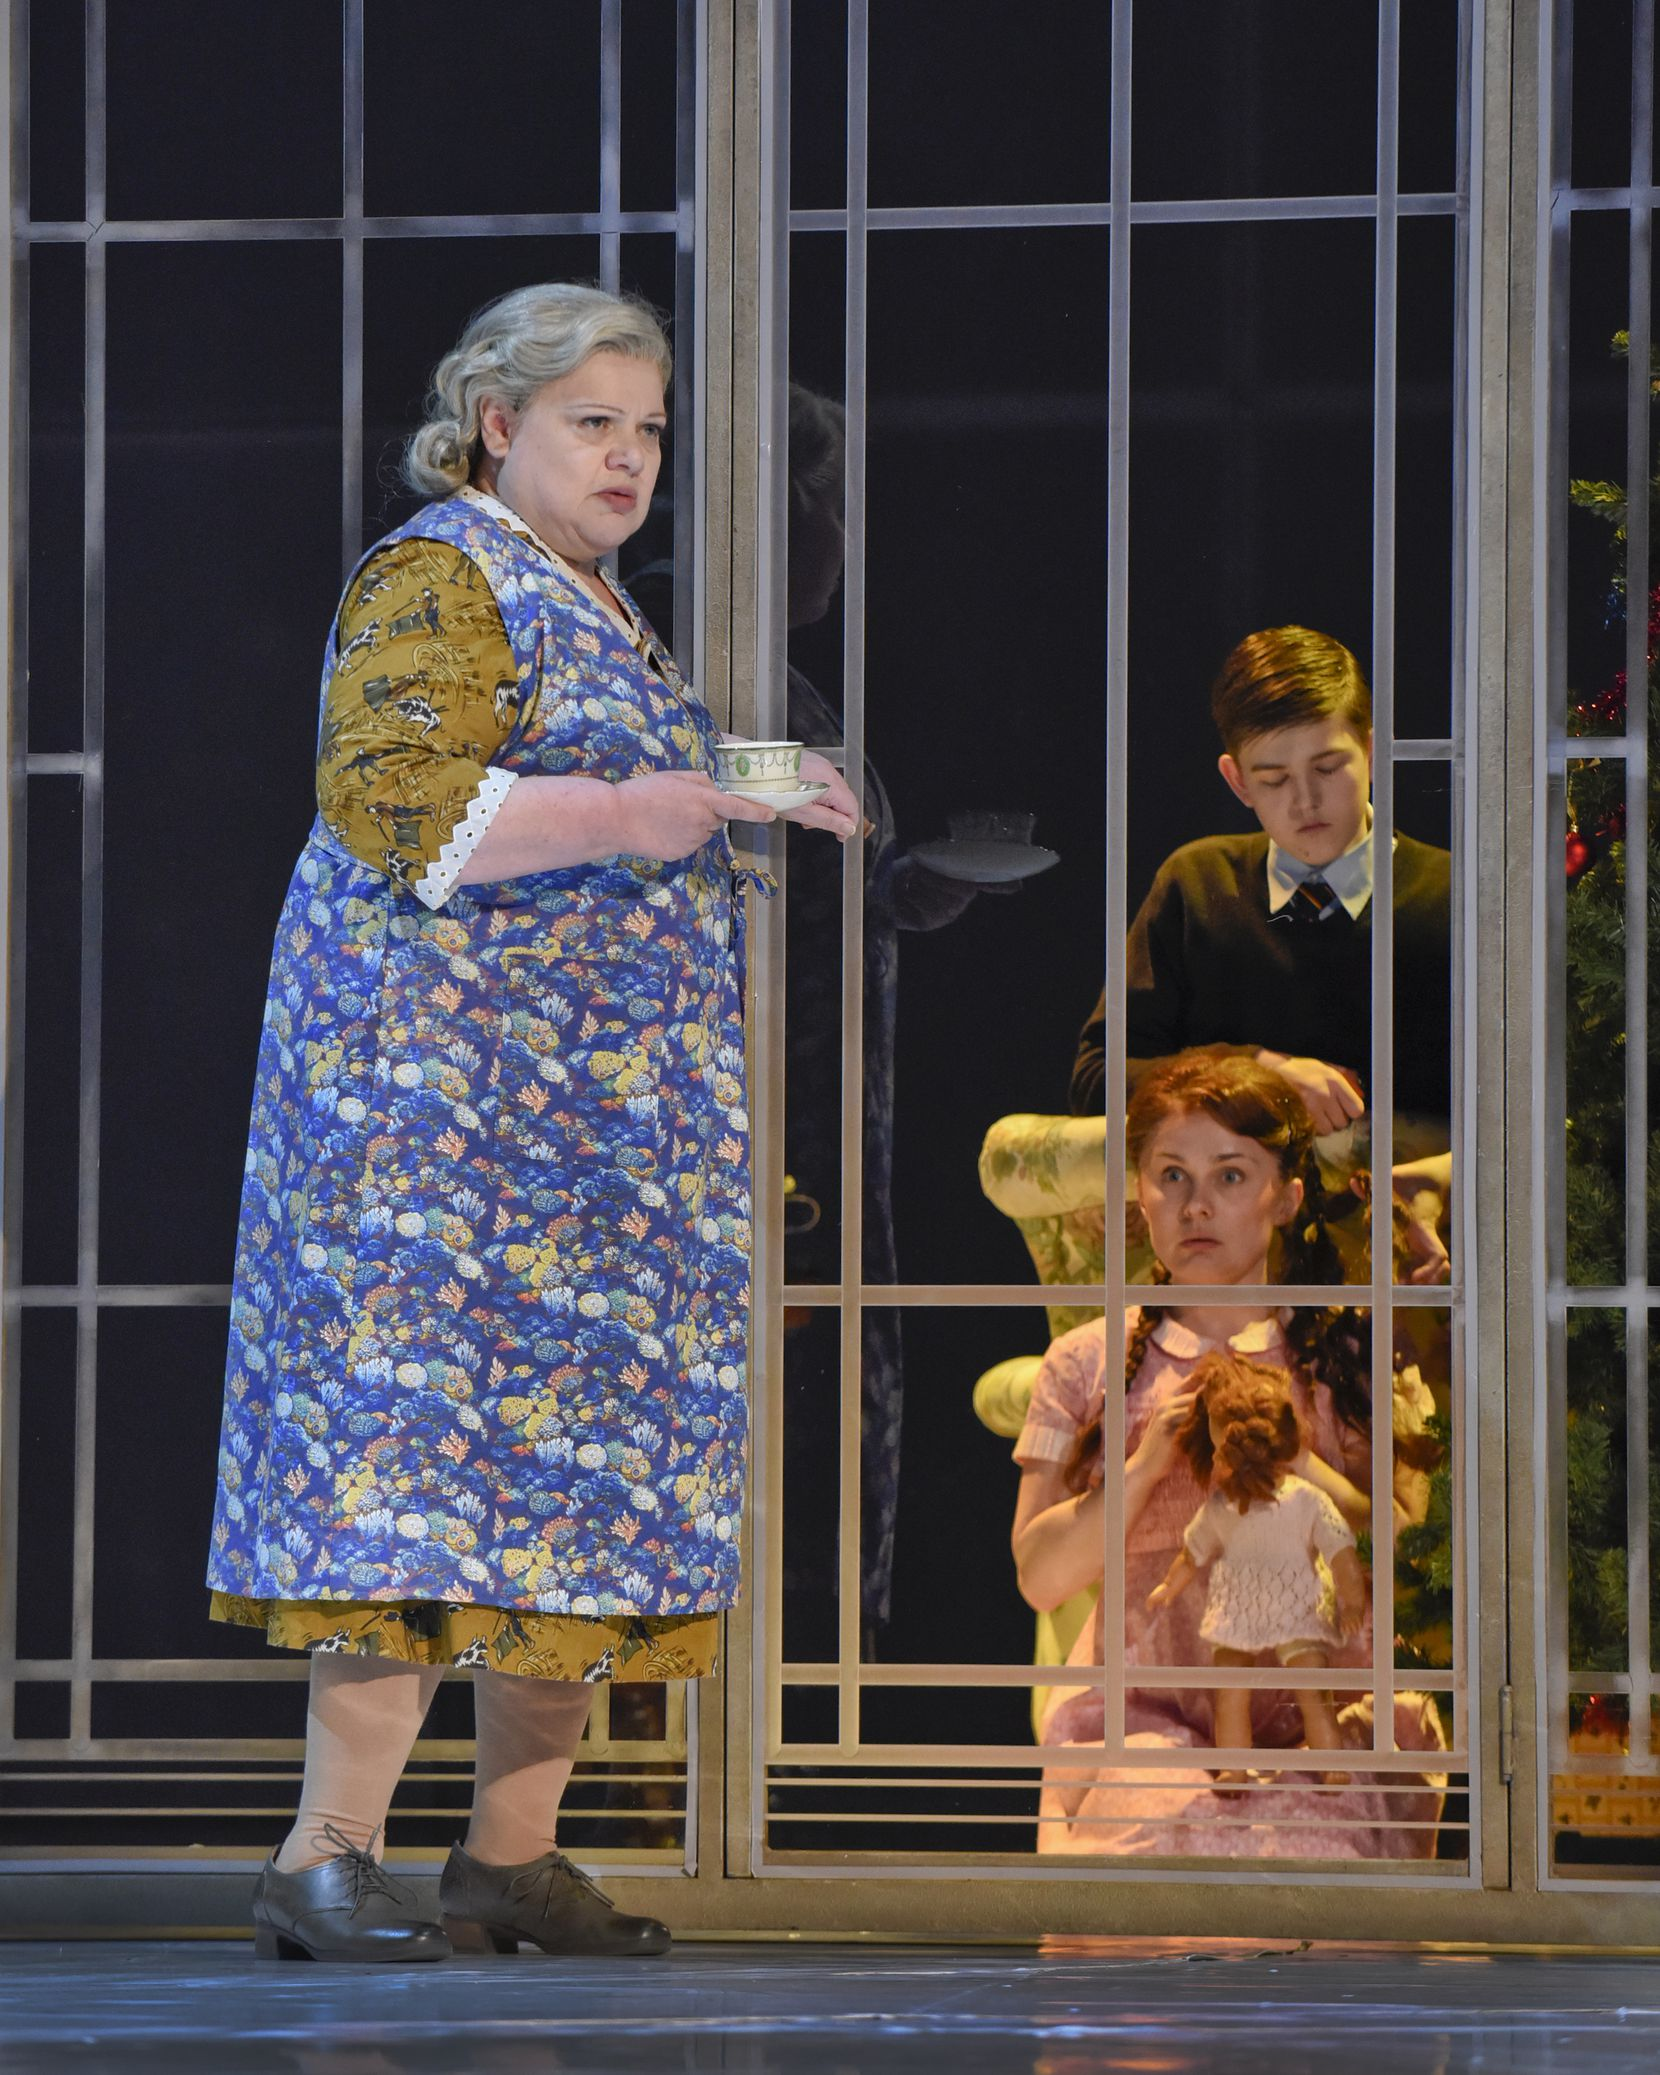 """Dolora Zajick (Mrs. Grose), Ashley Emerson (Flora) and Oliver Nathanielsz (Miles) in Dallas Opera dress rehearsal of """"The Turn of the Screw"""" on March 14, 2017 at Winspear Opera House in downtown Dallas. Karen Almond/Dallas Opera."""